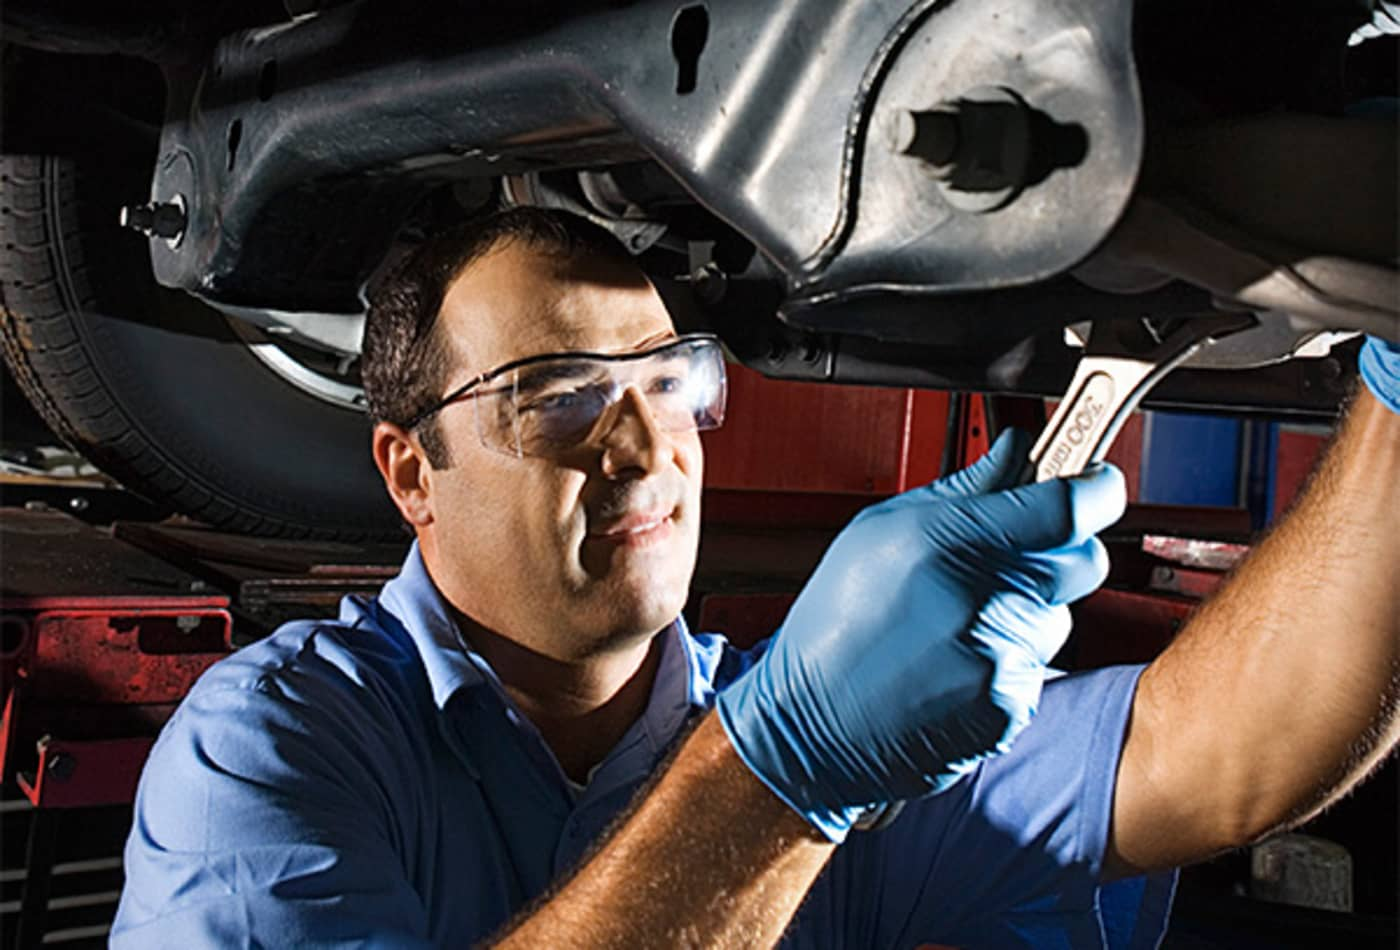 12-underrated-jobs-autoMechanic.jpg